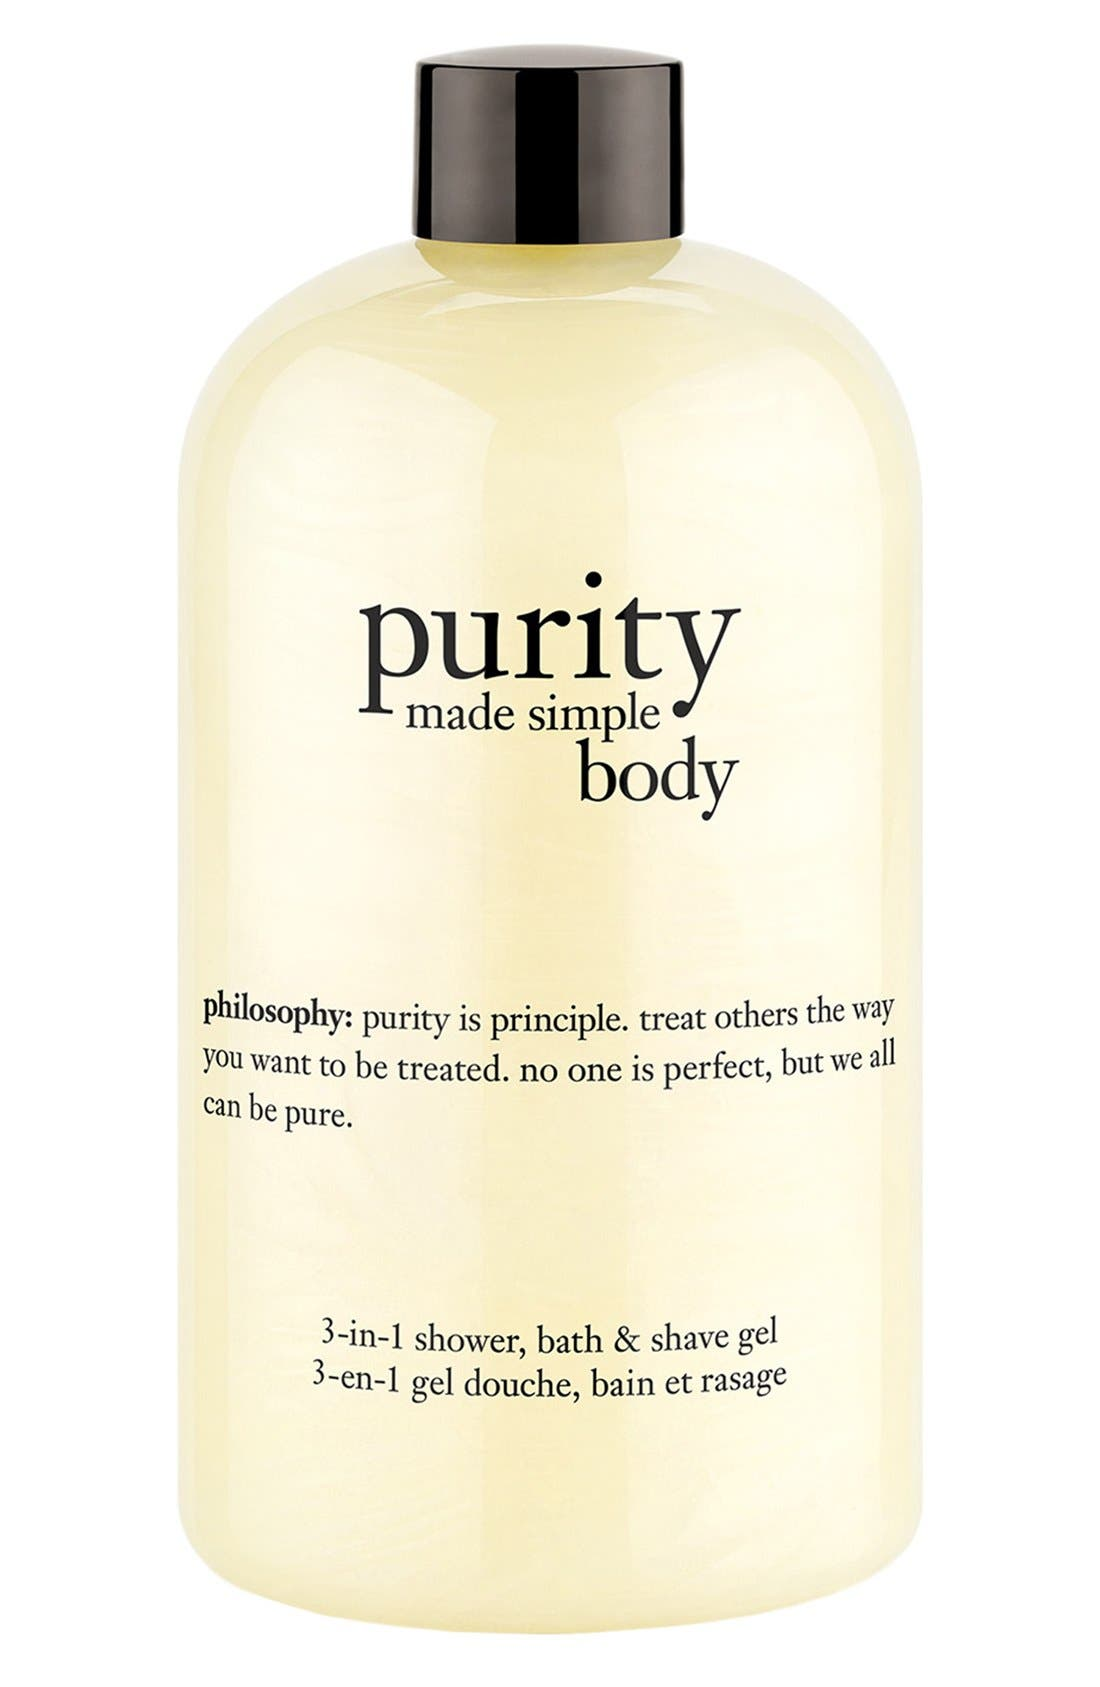 PHILOSOPHY,                             'purity made simple body' 3-in-1 shower, bath & shave gel,                             Main thumbnail 1, color,                             NO COLOR